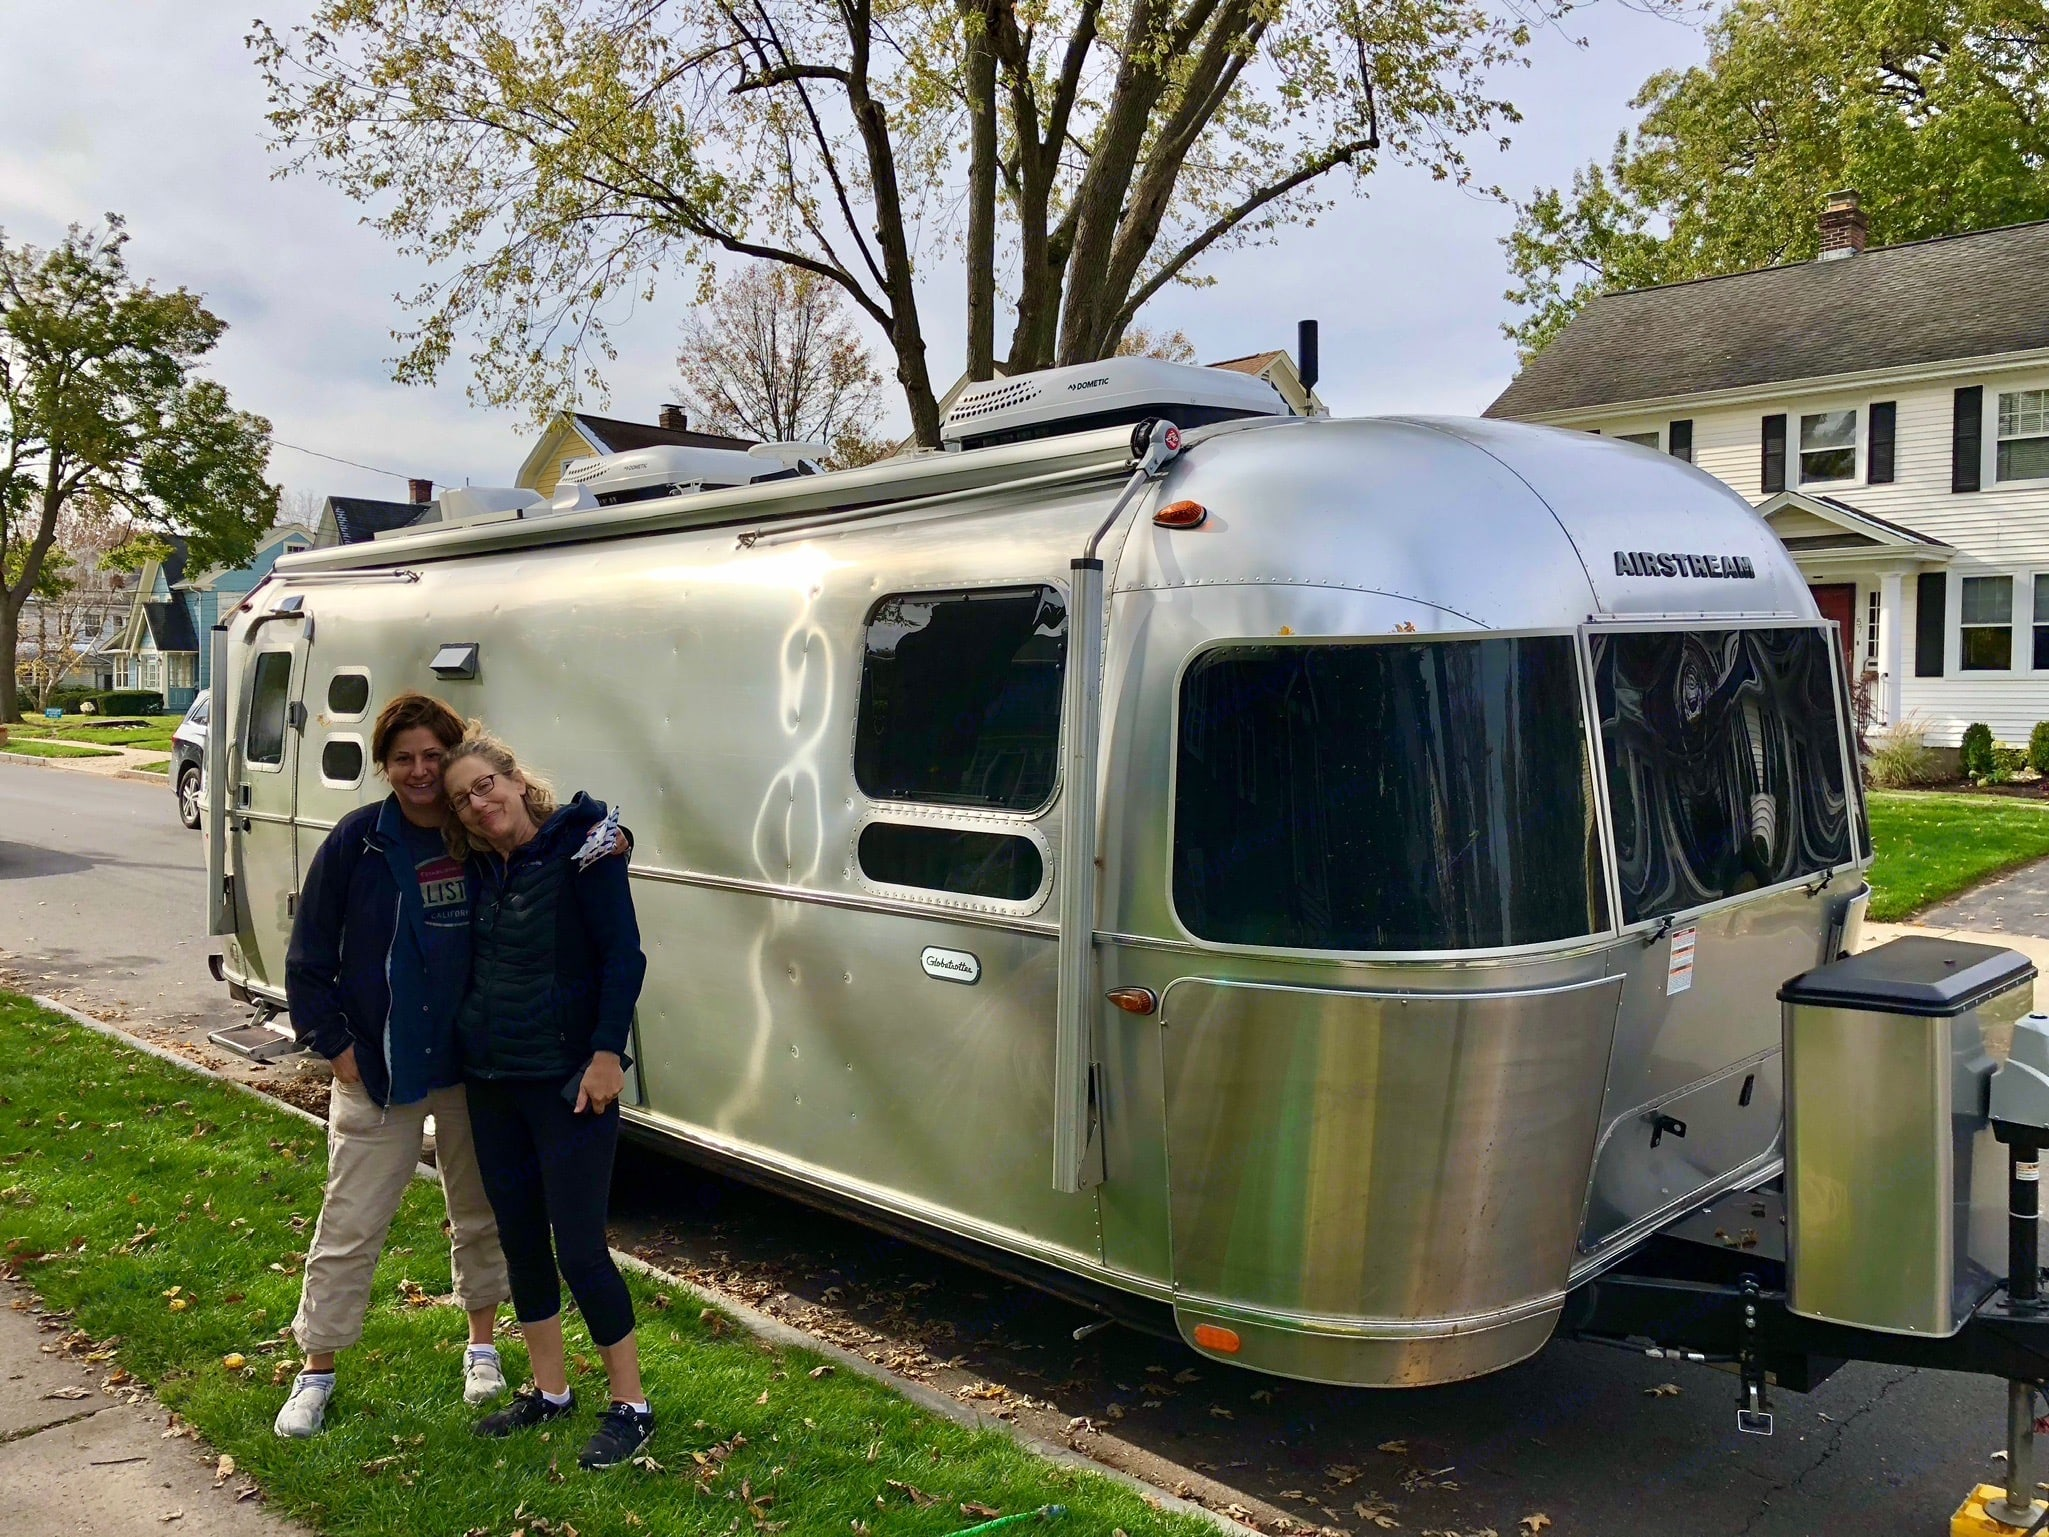 Parked in front of a friend's place on the East Coast after our first cross country journey. Airstream Globetrotter 2019